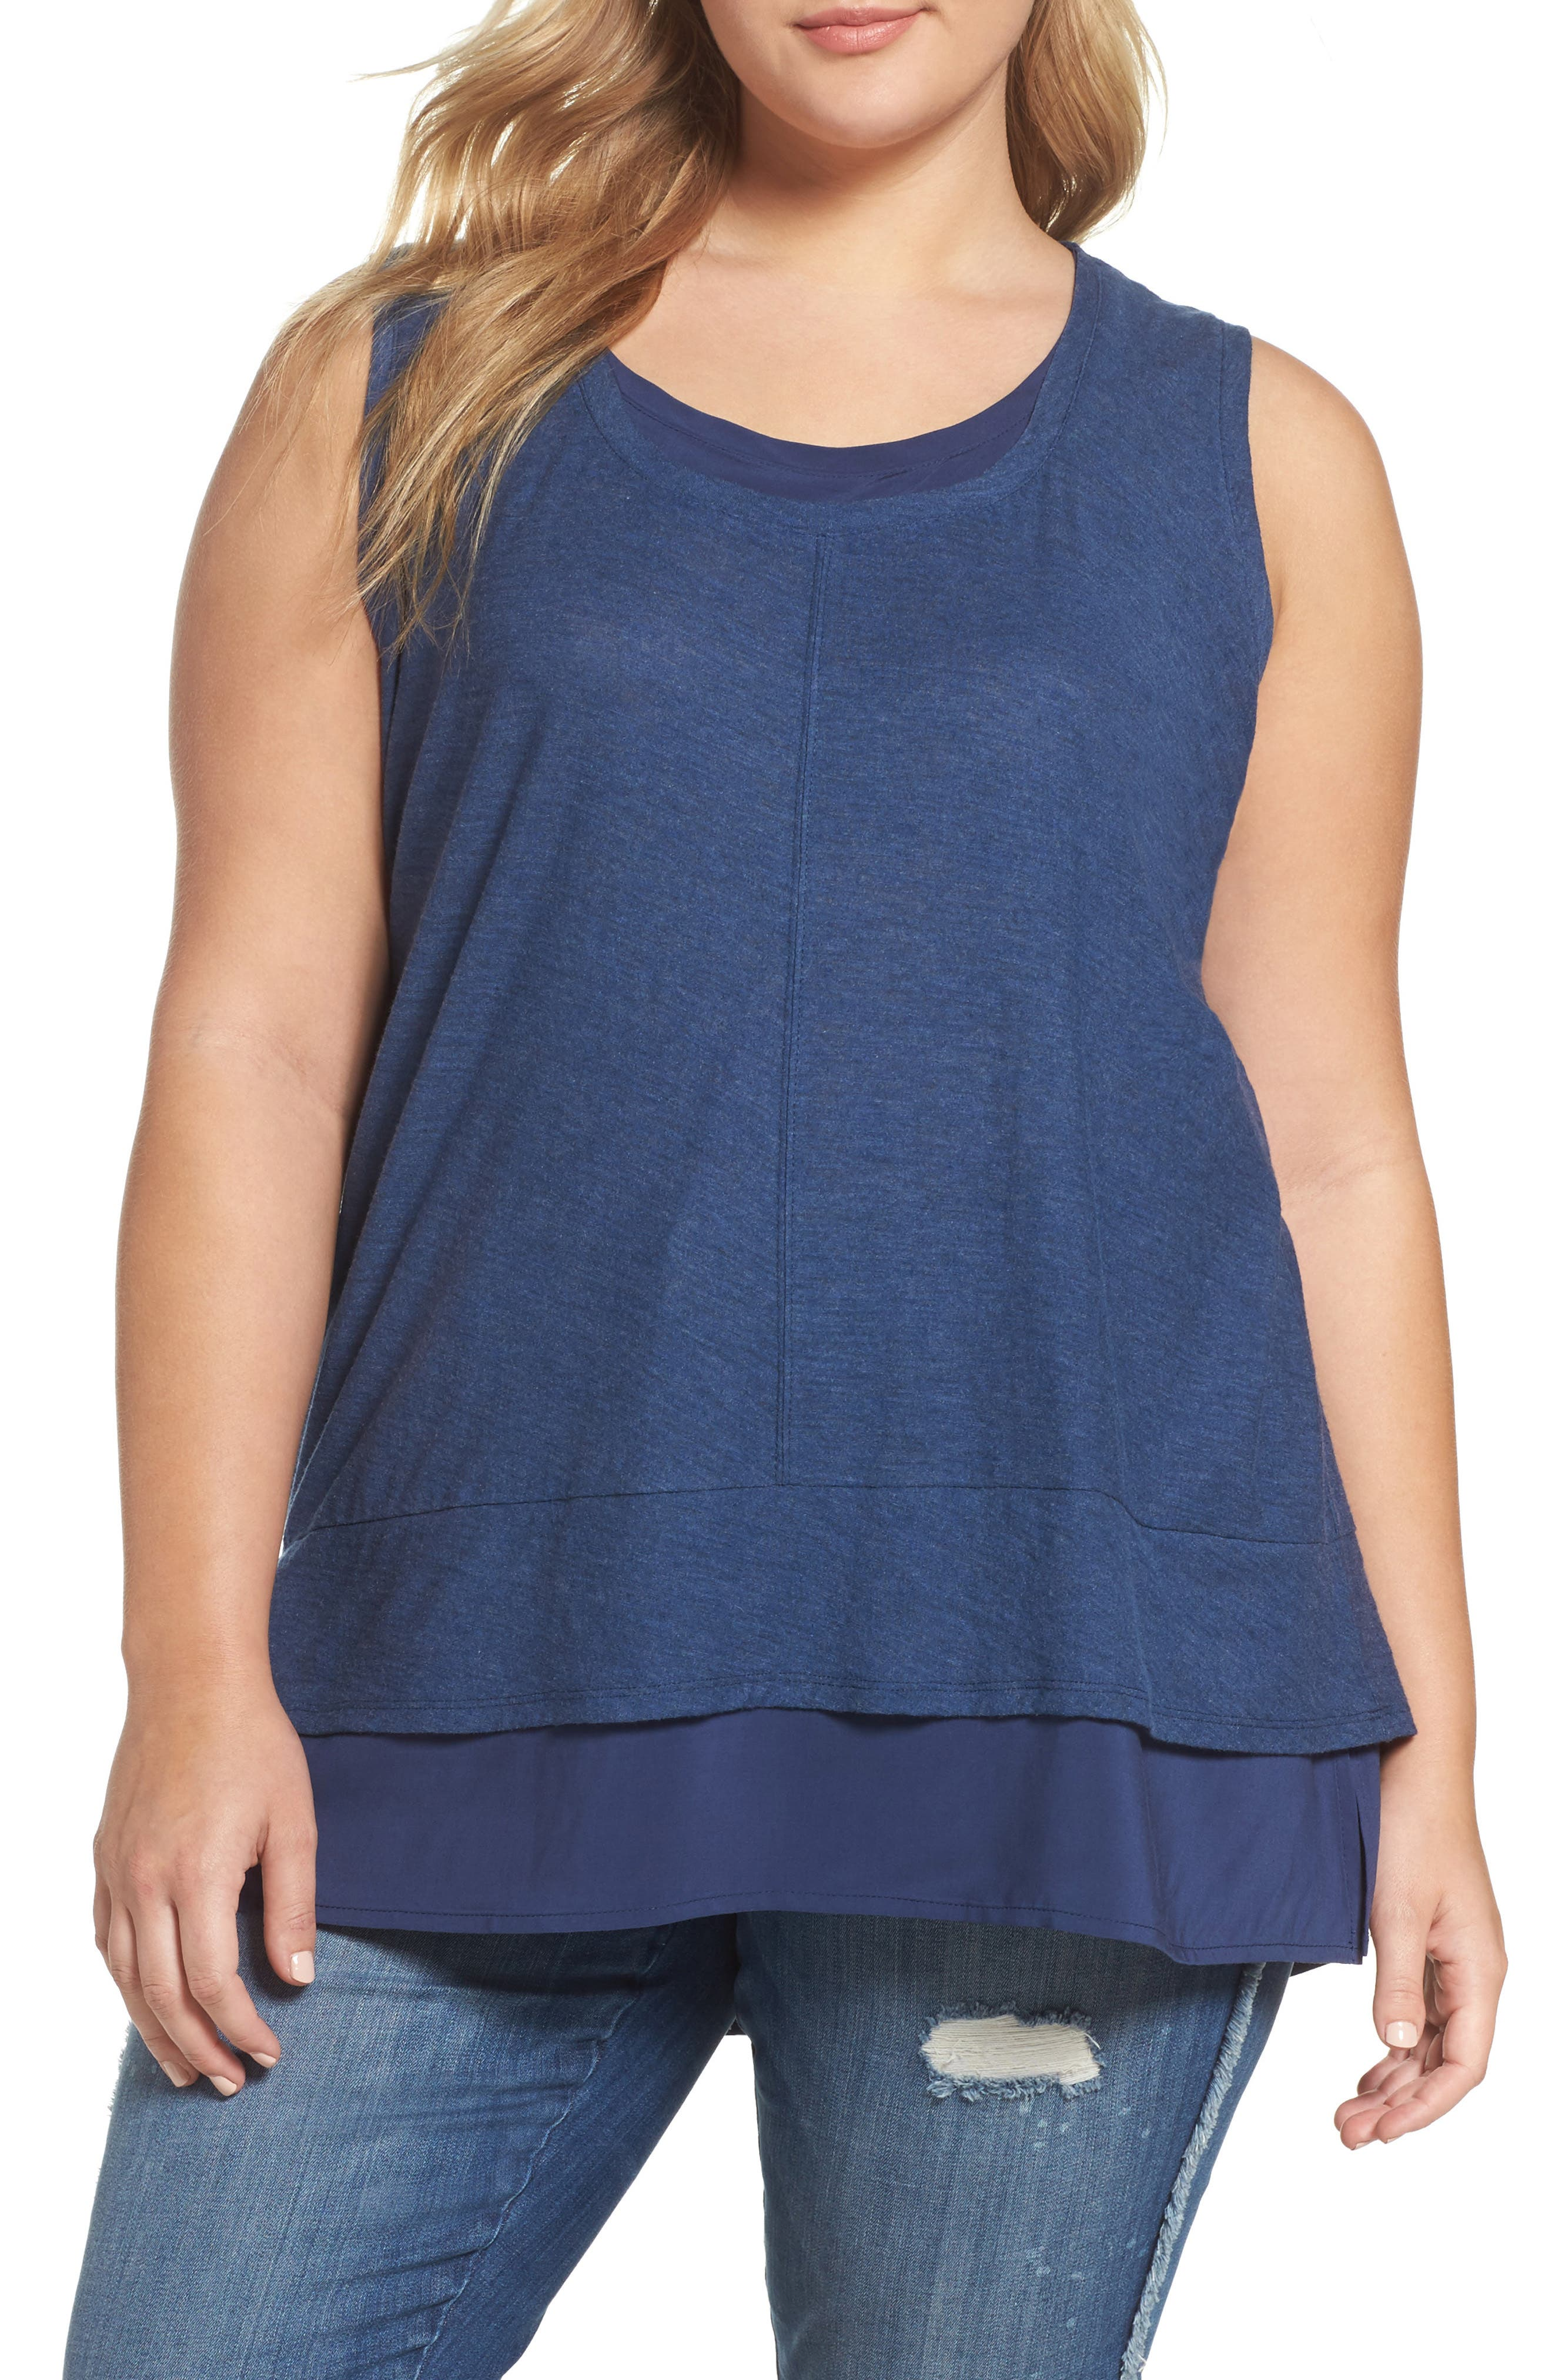 Two by Vince Camuto Layered Look Top (Plus Size)